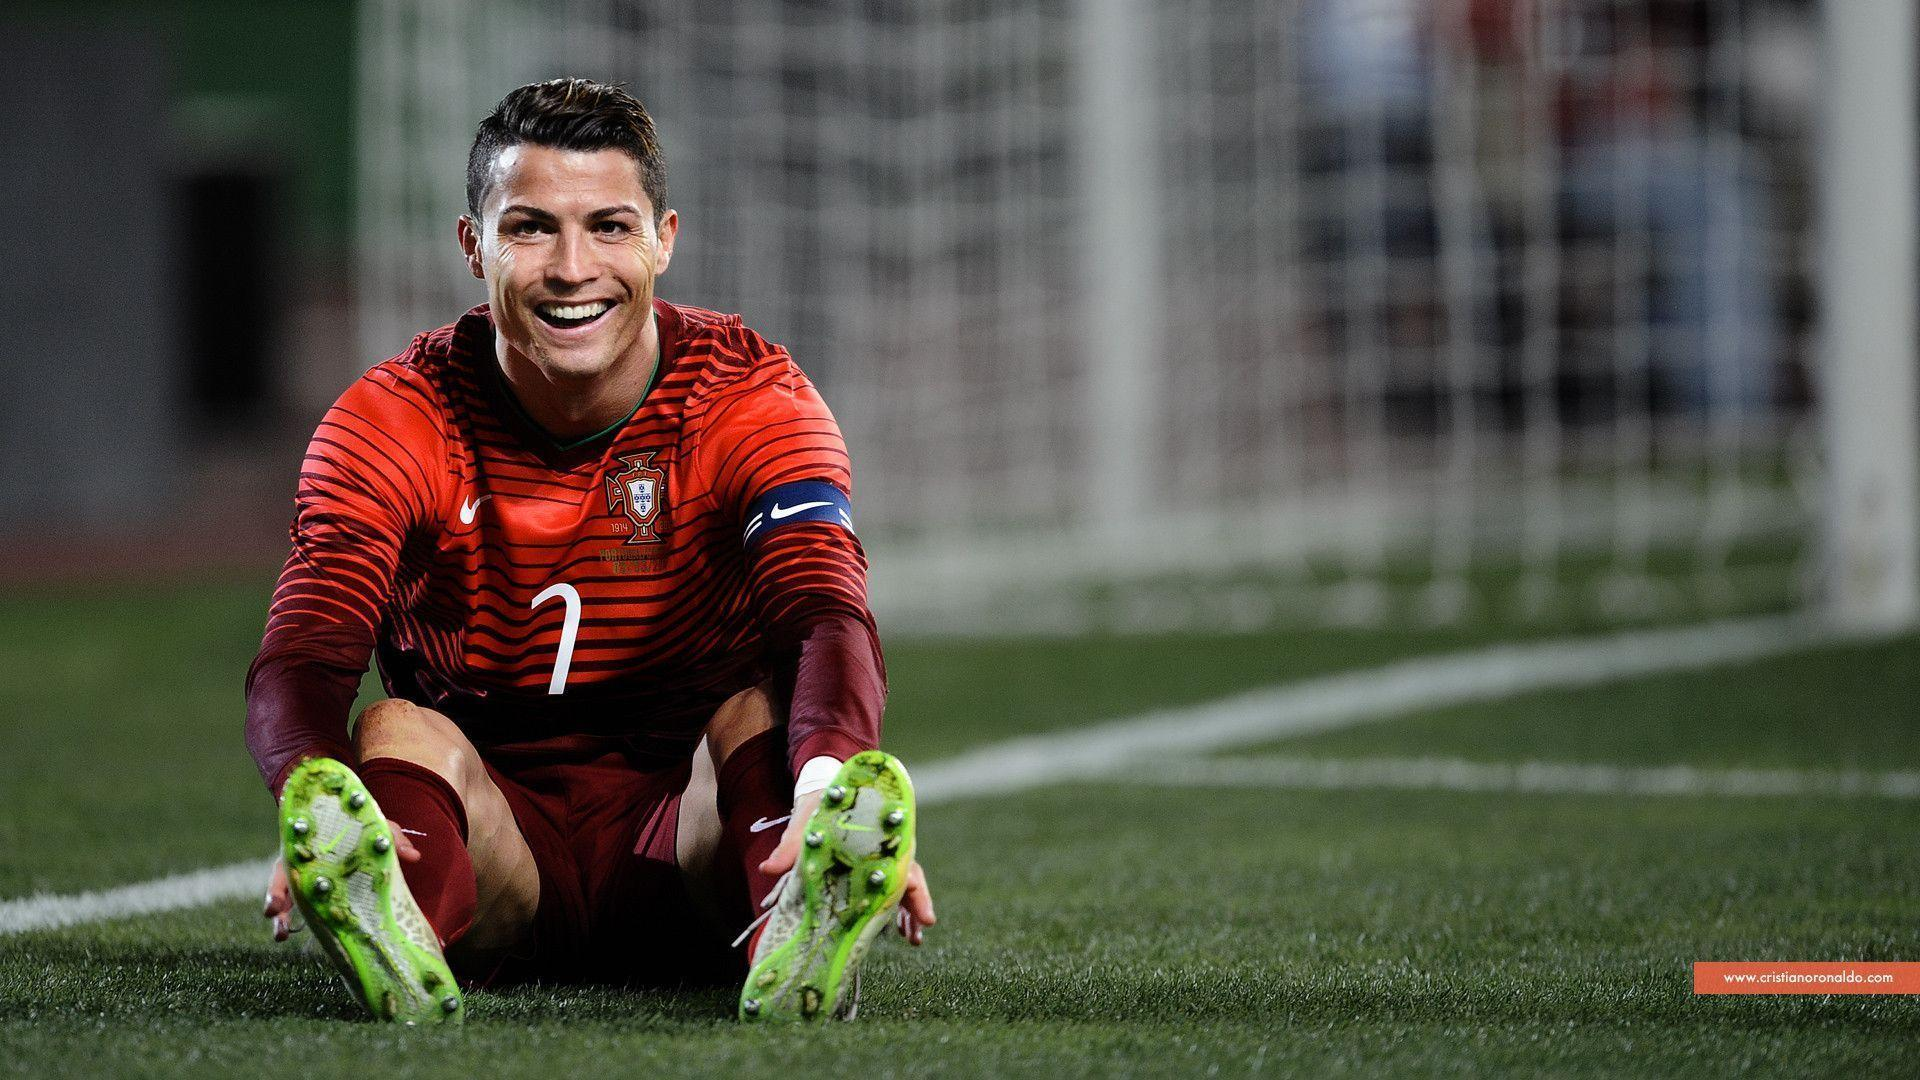 C ronaldo wallpapers hd 2015 wallpaper cave - C ronaldo wallpaper portugal ...